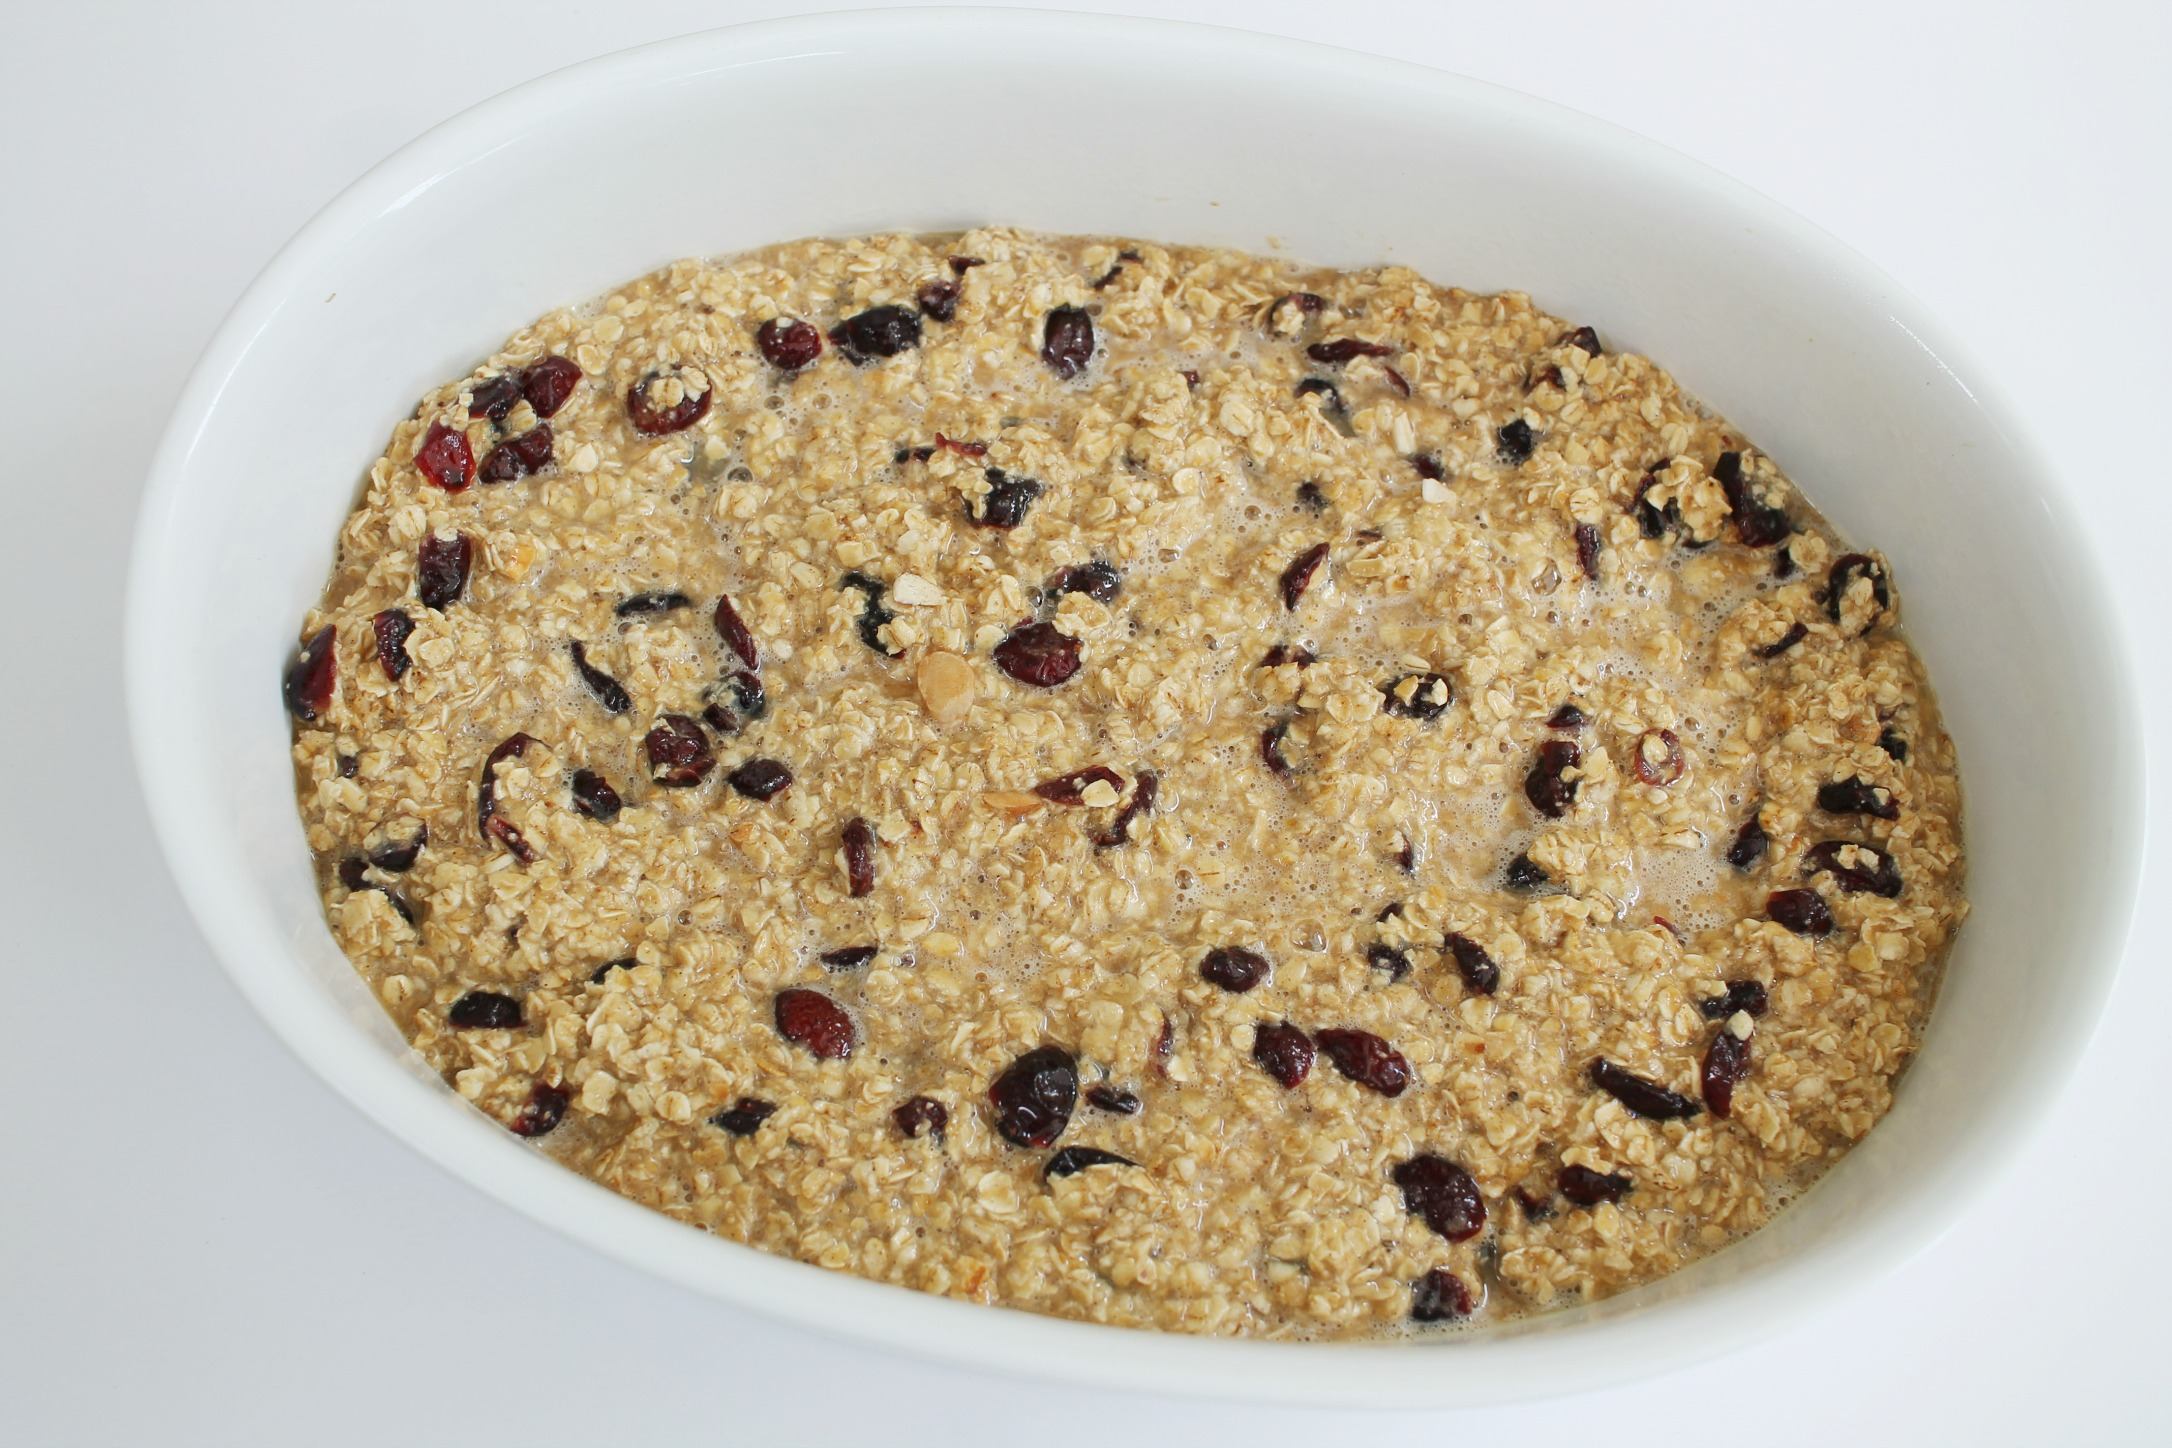 a white oval casserole dish with cranberry almond baked oatmeal before it's cooked